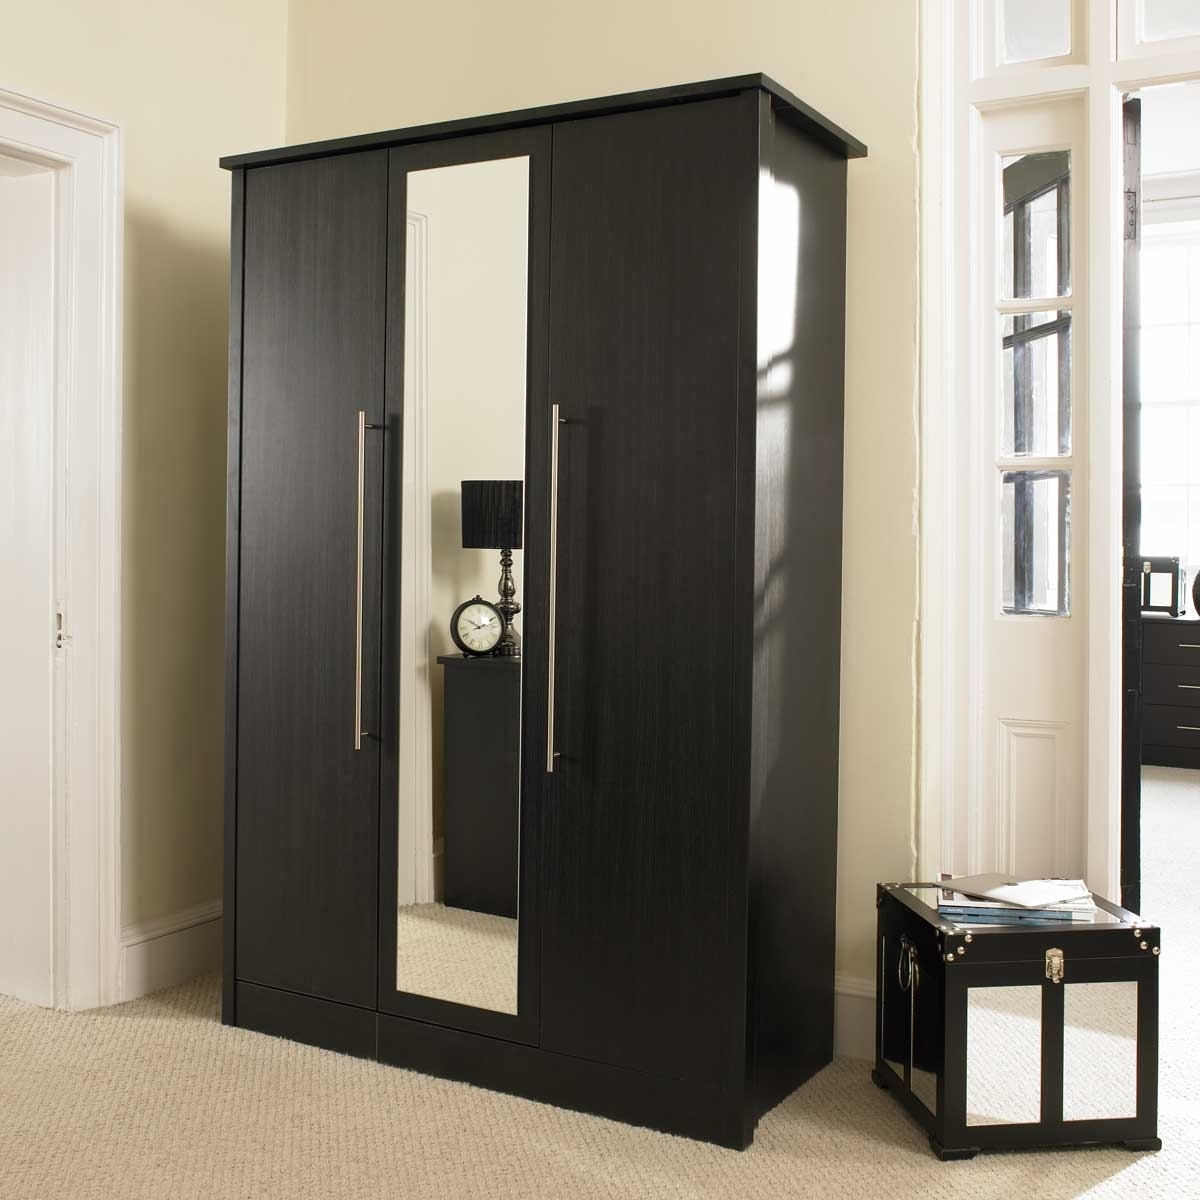 3 Door Black Wardrobe Closet • Closet Doors Within Most Popular 3 Doors Wardrobes With Mirror (View 1 of 15)